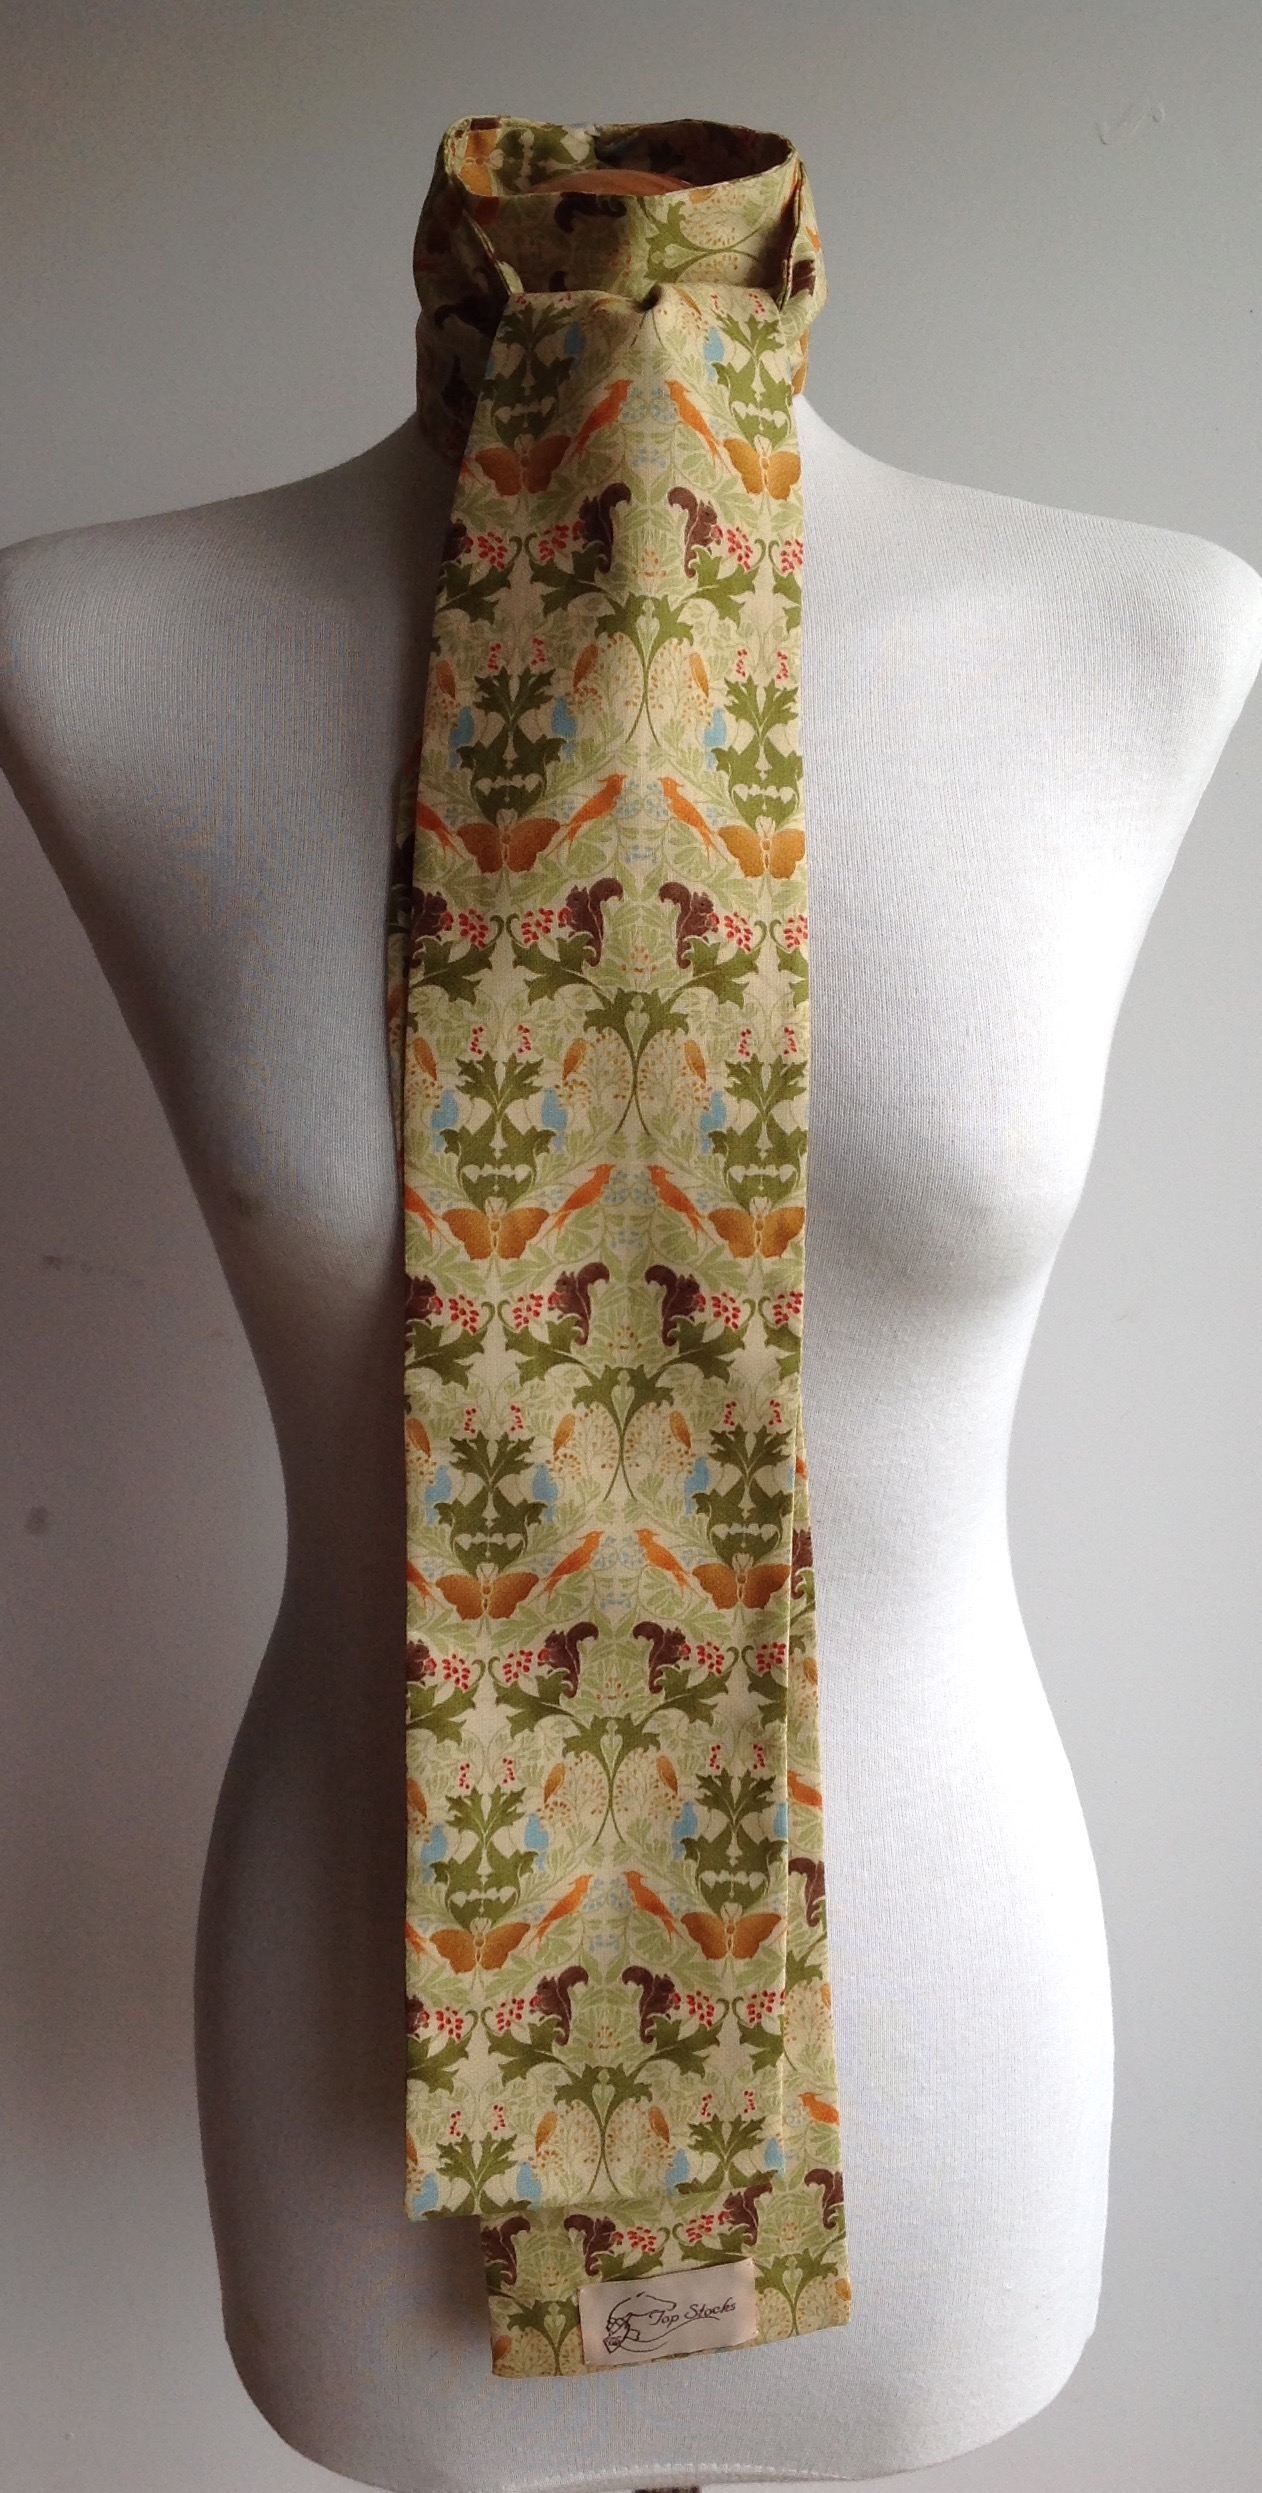 Shaped to tie 100% cotton stock - Arts & Crafts Flora and Fauna